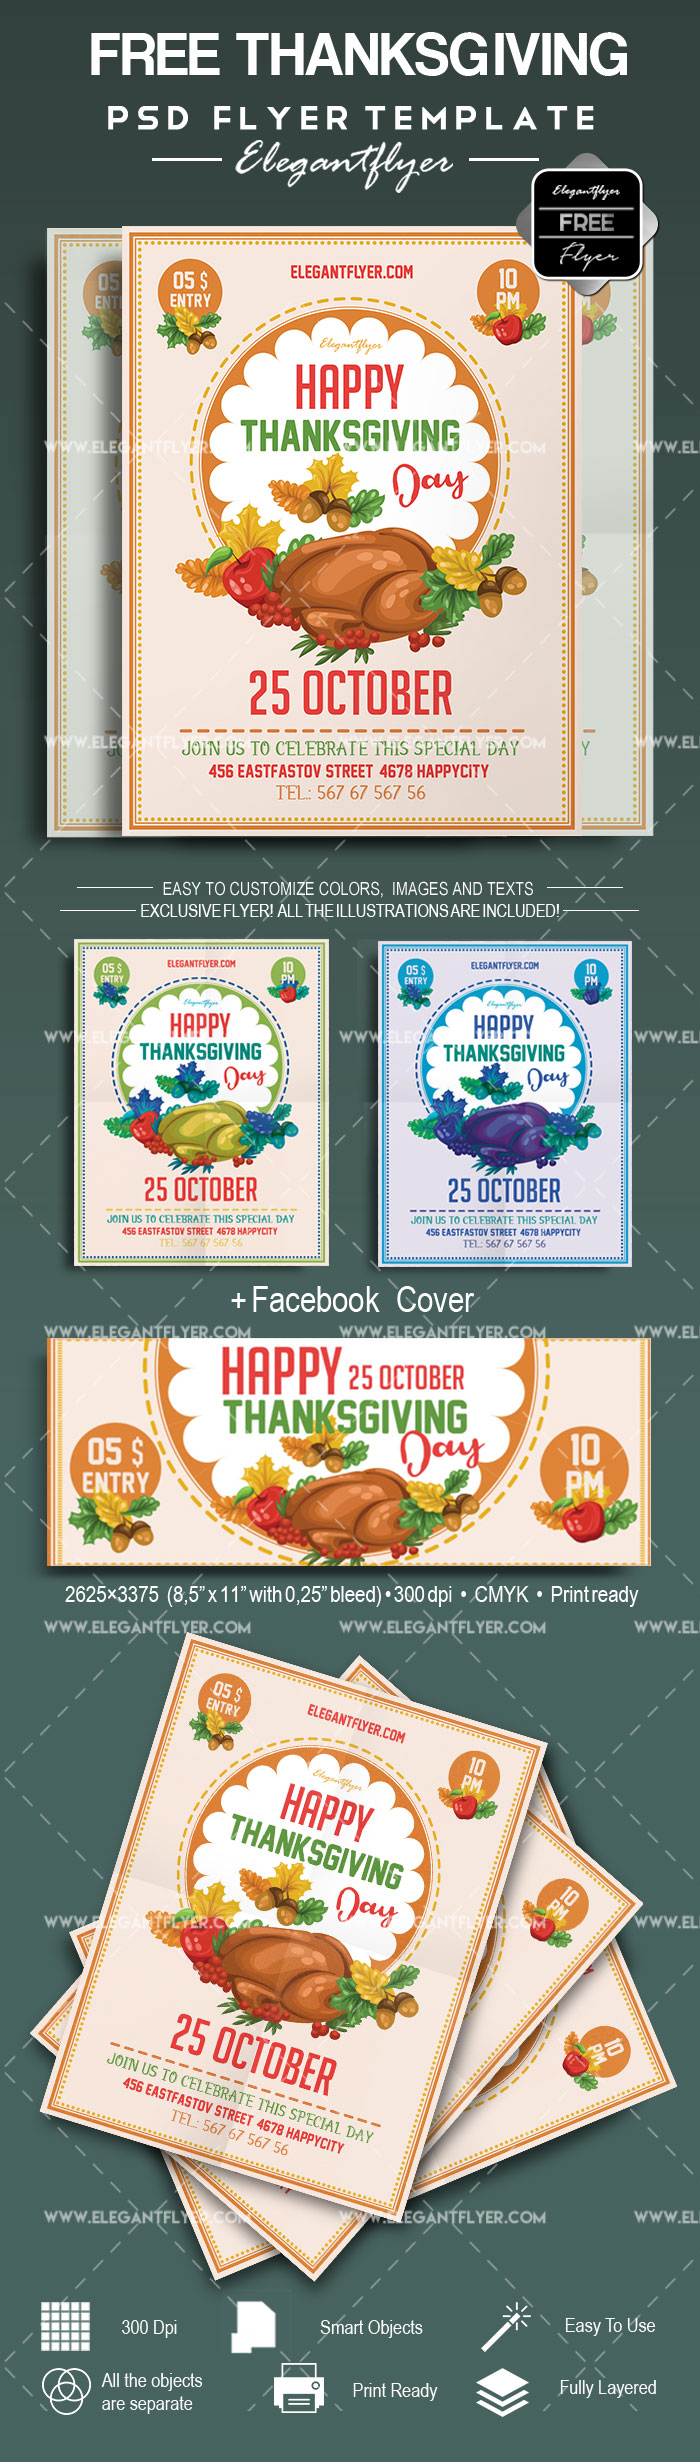 Free Happy Thanksgiving Day PSD Poster